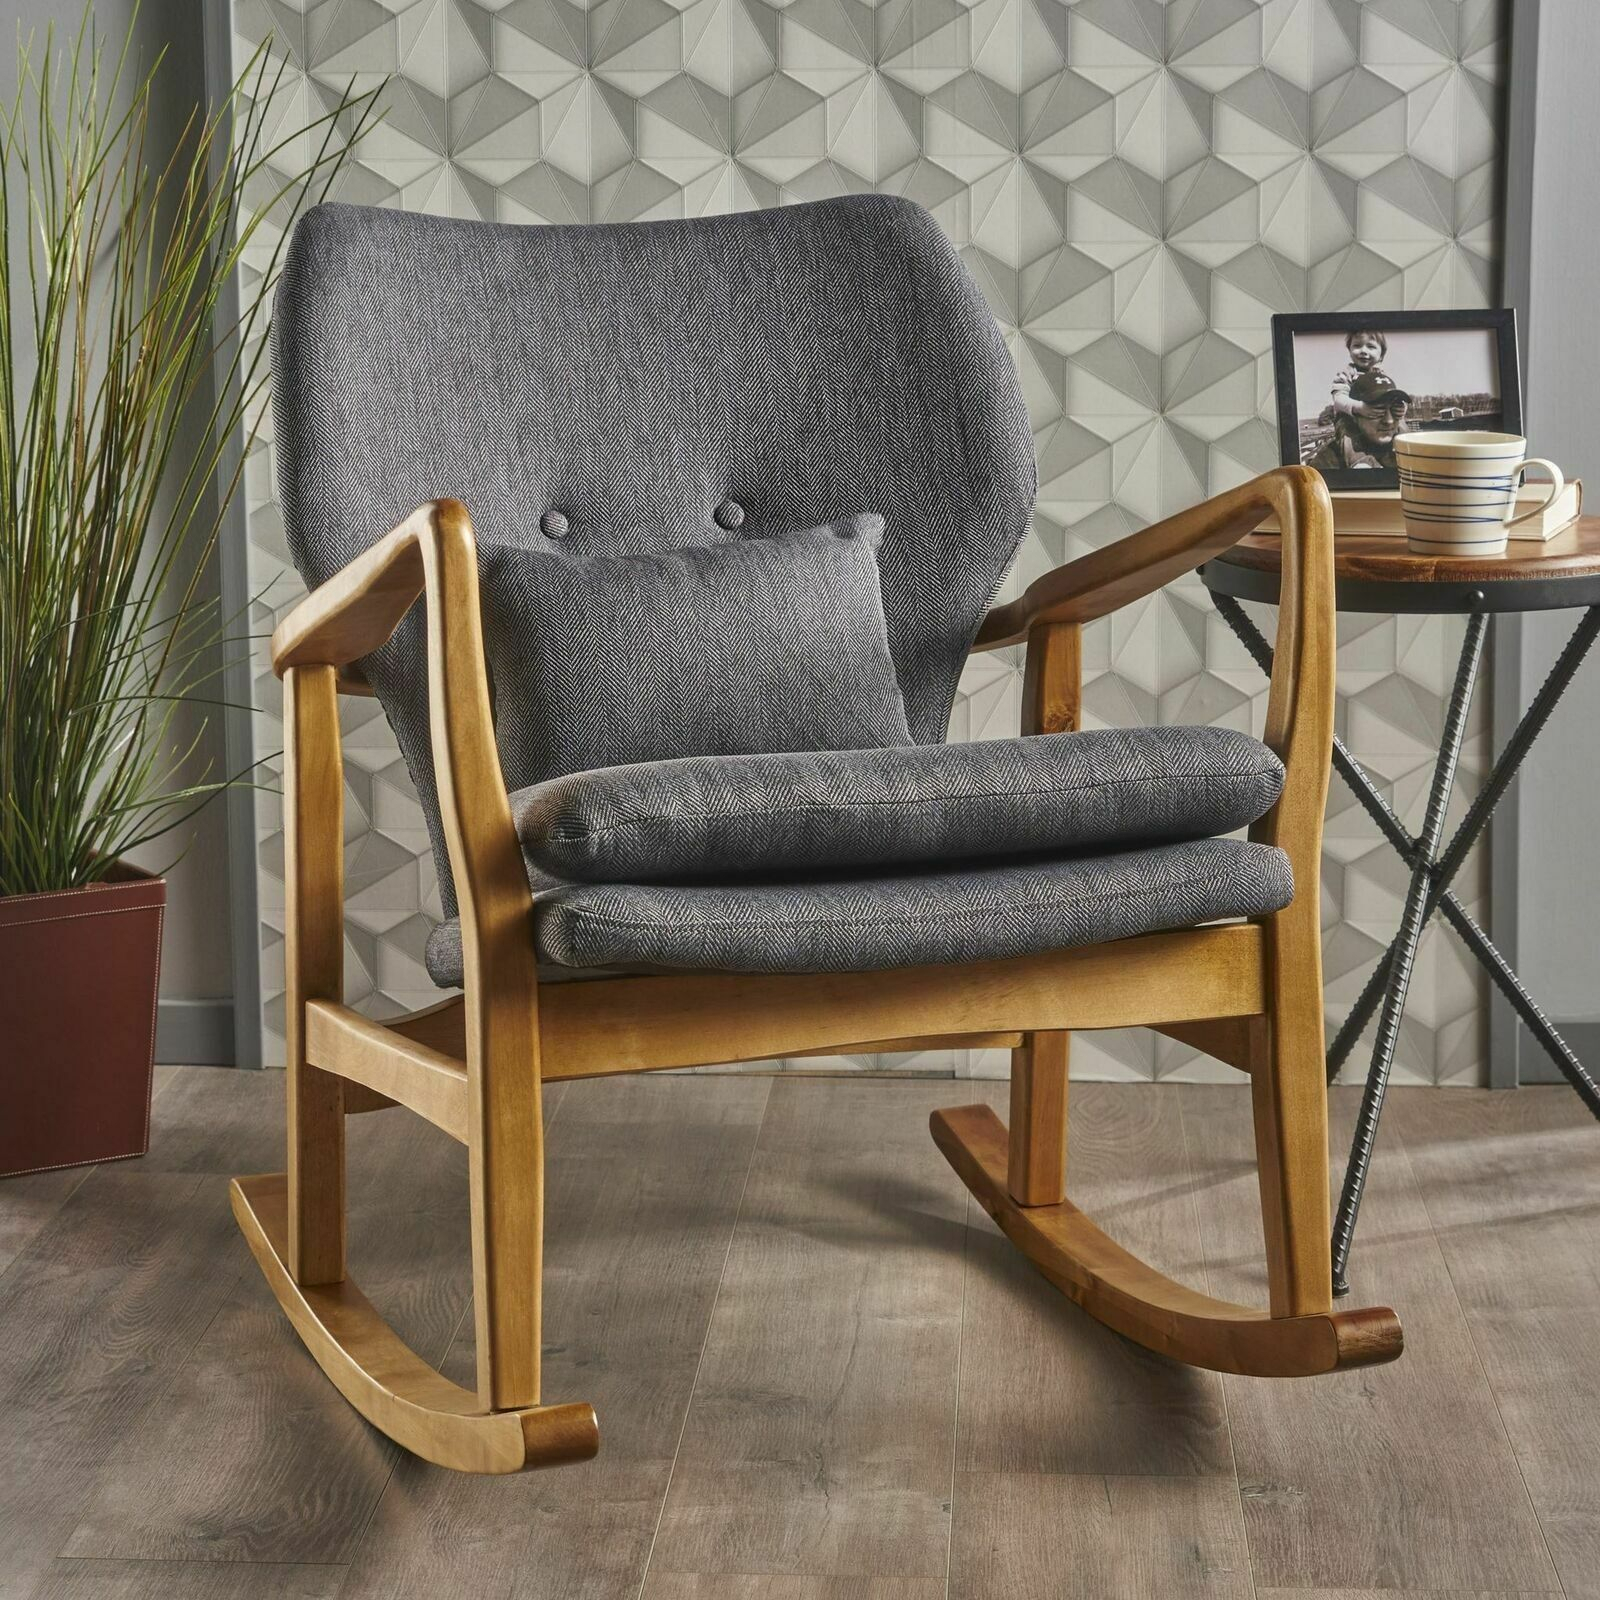 Jenny Mid Century Modern Dark Slate Fabric Rocking Chair Intended For Mid Century Fabric Rocking Chairs (View 14 of 20)